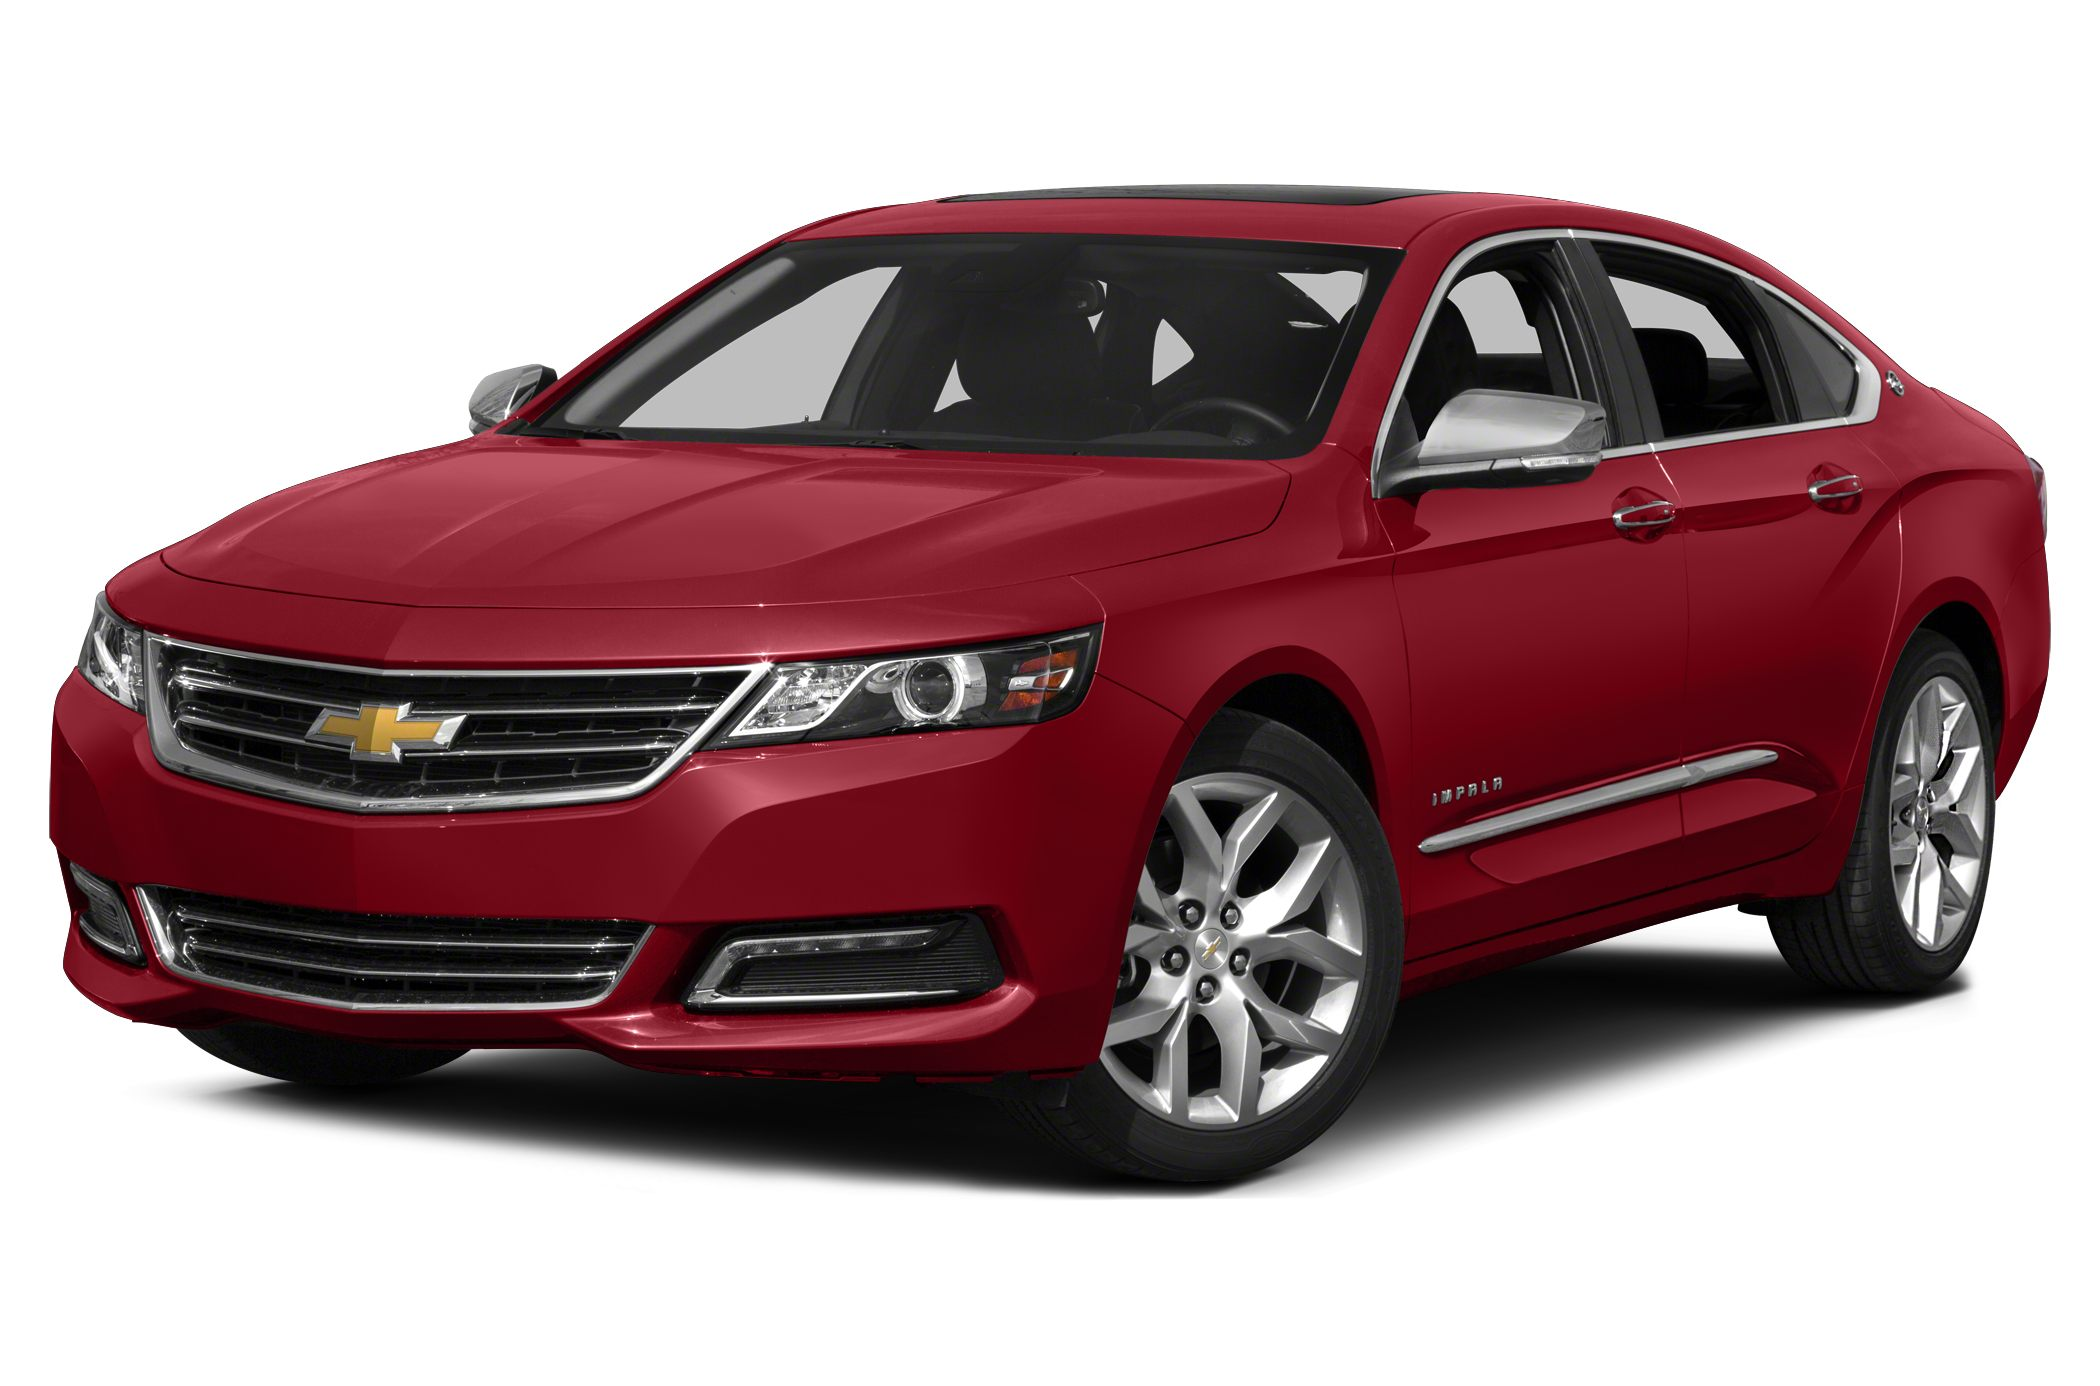 2015 Chevrolet Impala LS Sedan for sale in Superior for $27,885 with 0 miles